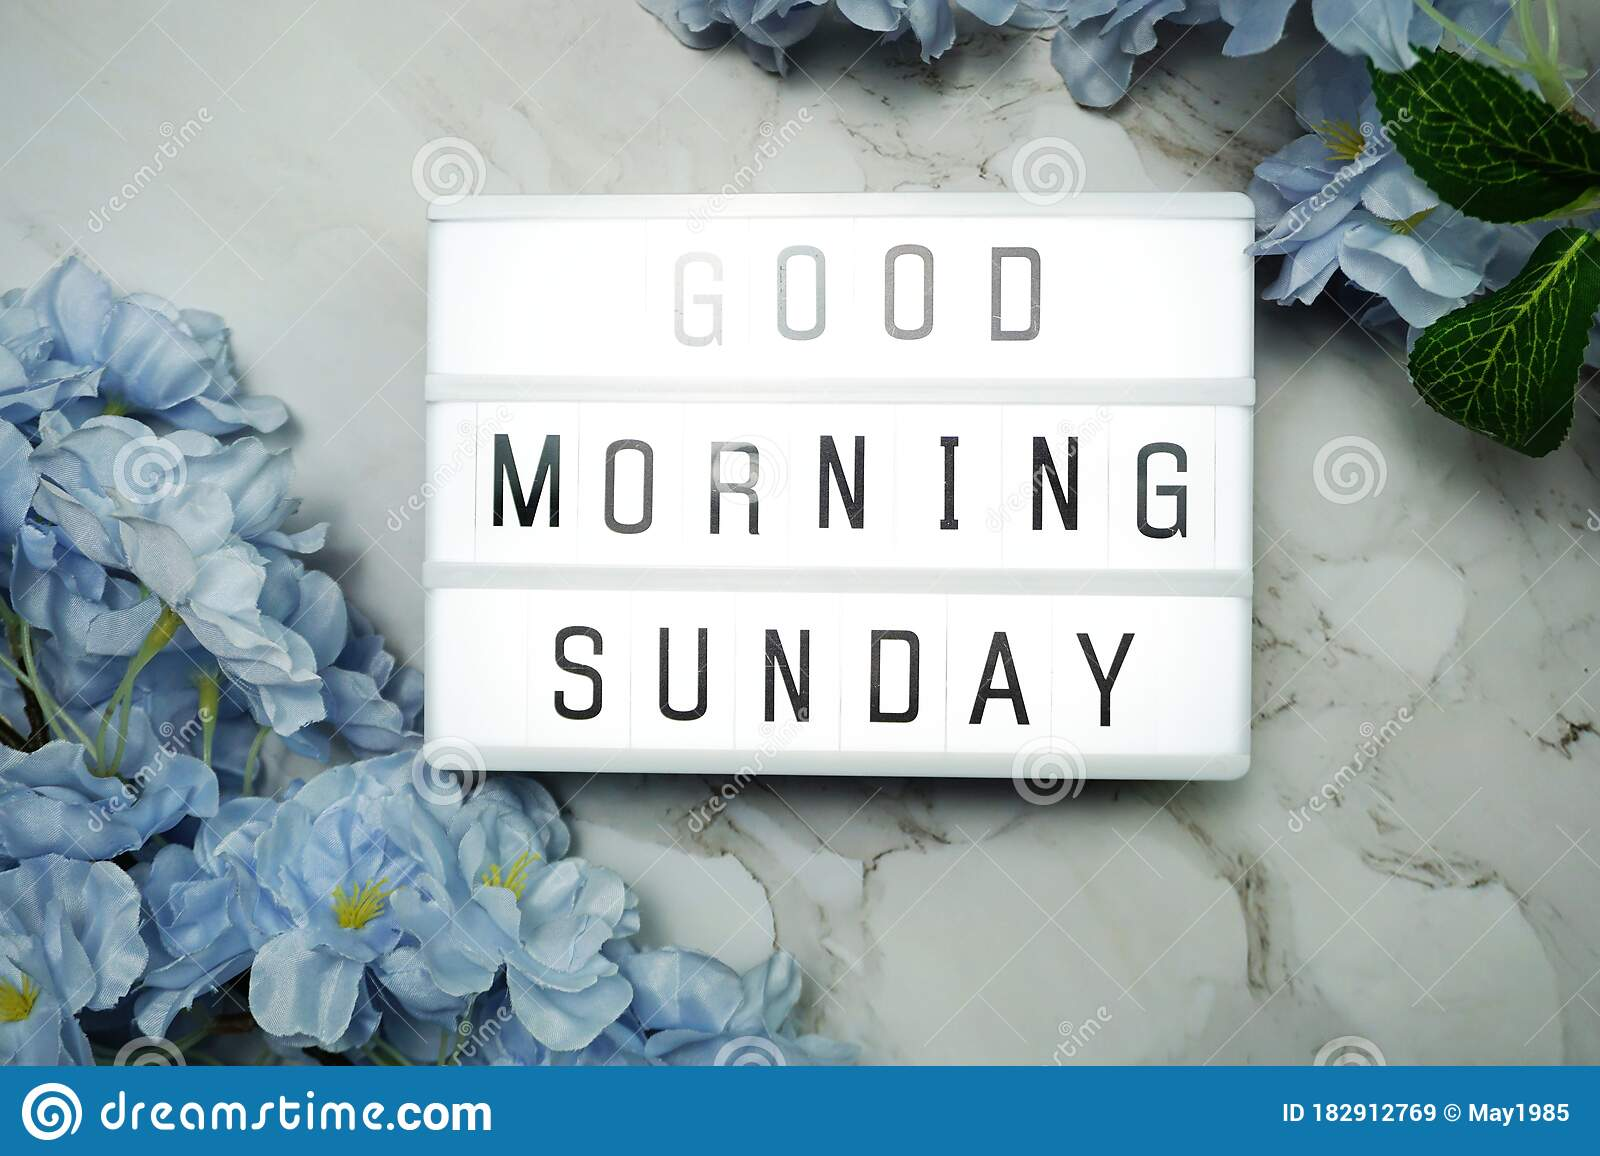 Good Morning Sunday Word In Light Box With Flowers Decoration Stock Image Image Of Massage Happy 182912769